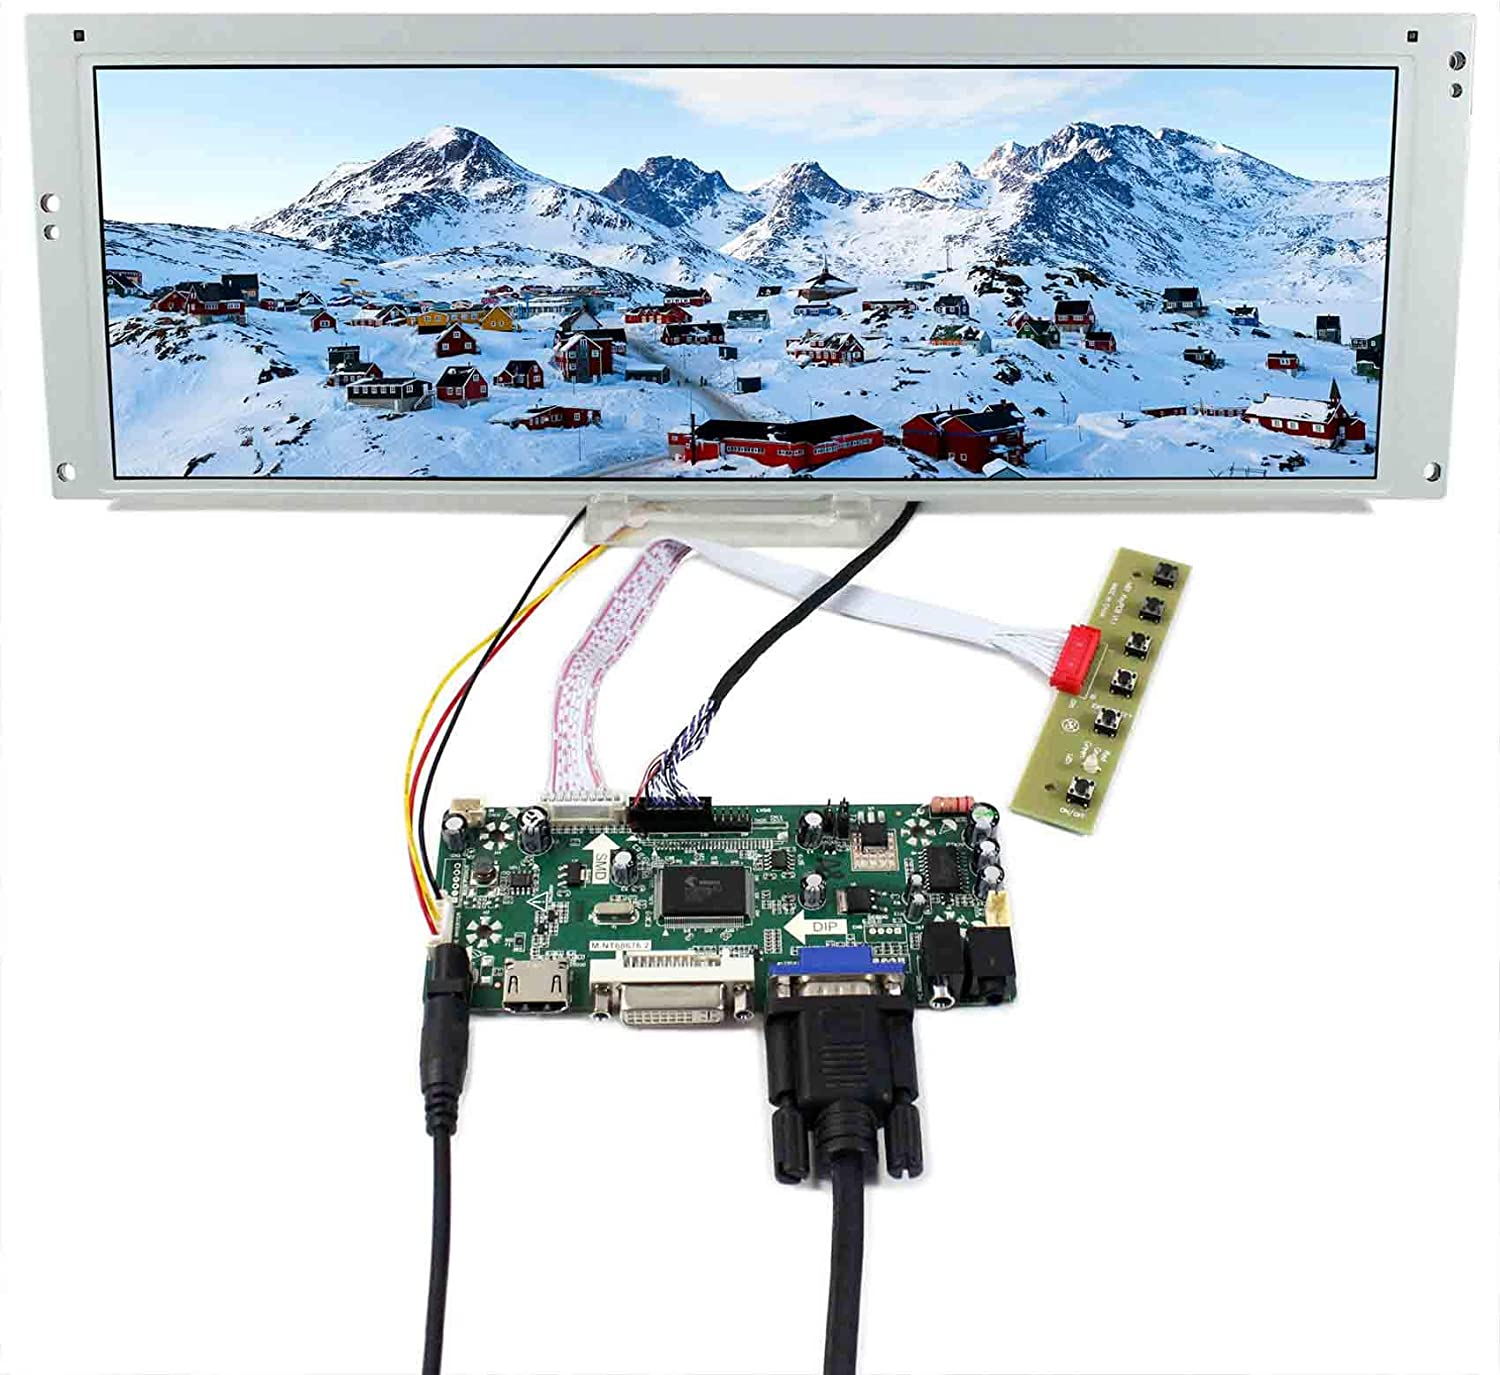 "VSDISPLAY 14.9"" 14.9 inch 1280X390 LCD Screen LTA149B780F with HDMI DVI VGA Audio LCD Controller Board M.NT68676, fit for Arcade Machines/DIY displays/Car Monitor/Digital Marquee/Gauge Cluster"